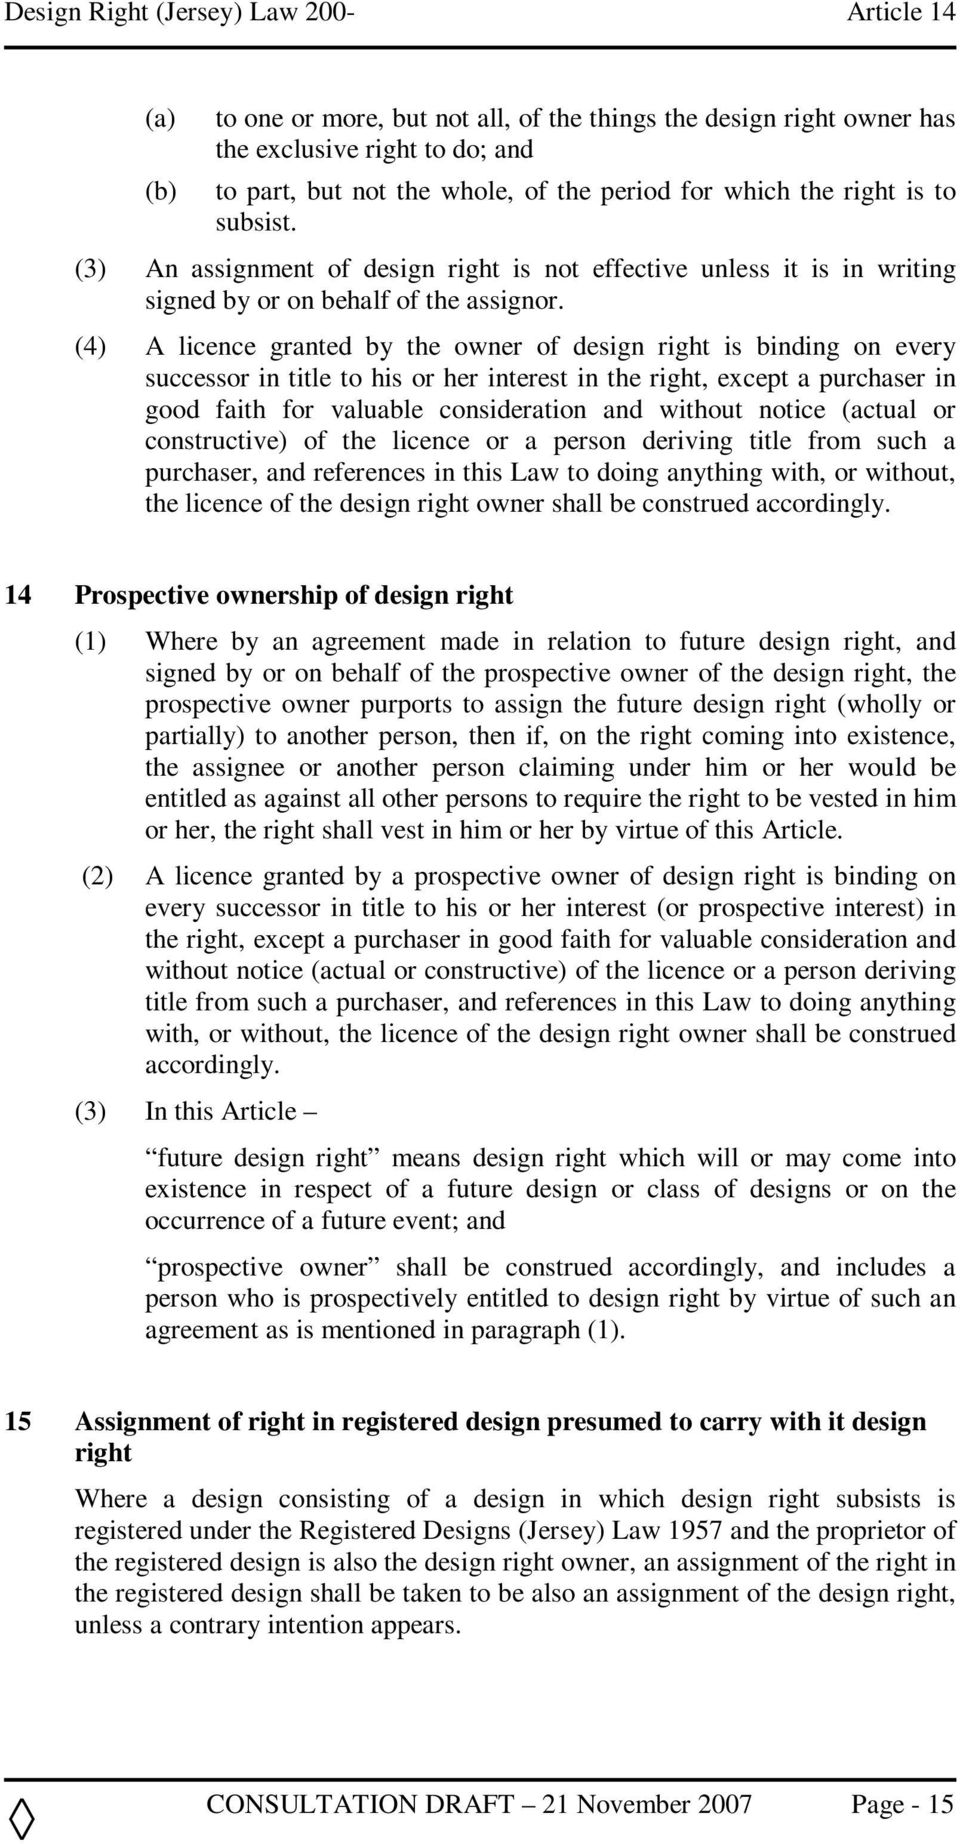 (4) A licence granted by the owner of design right is binding on every successor in title to his or her interest in the right, except a purchaser in good faith for valuable consideration and without